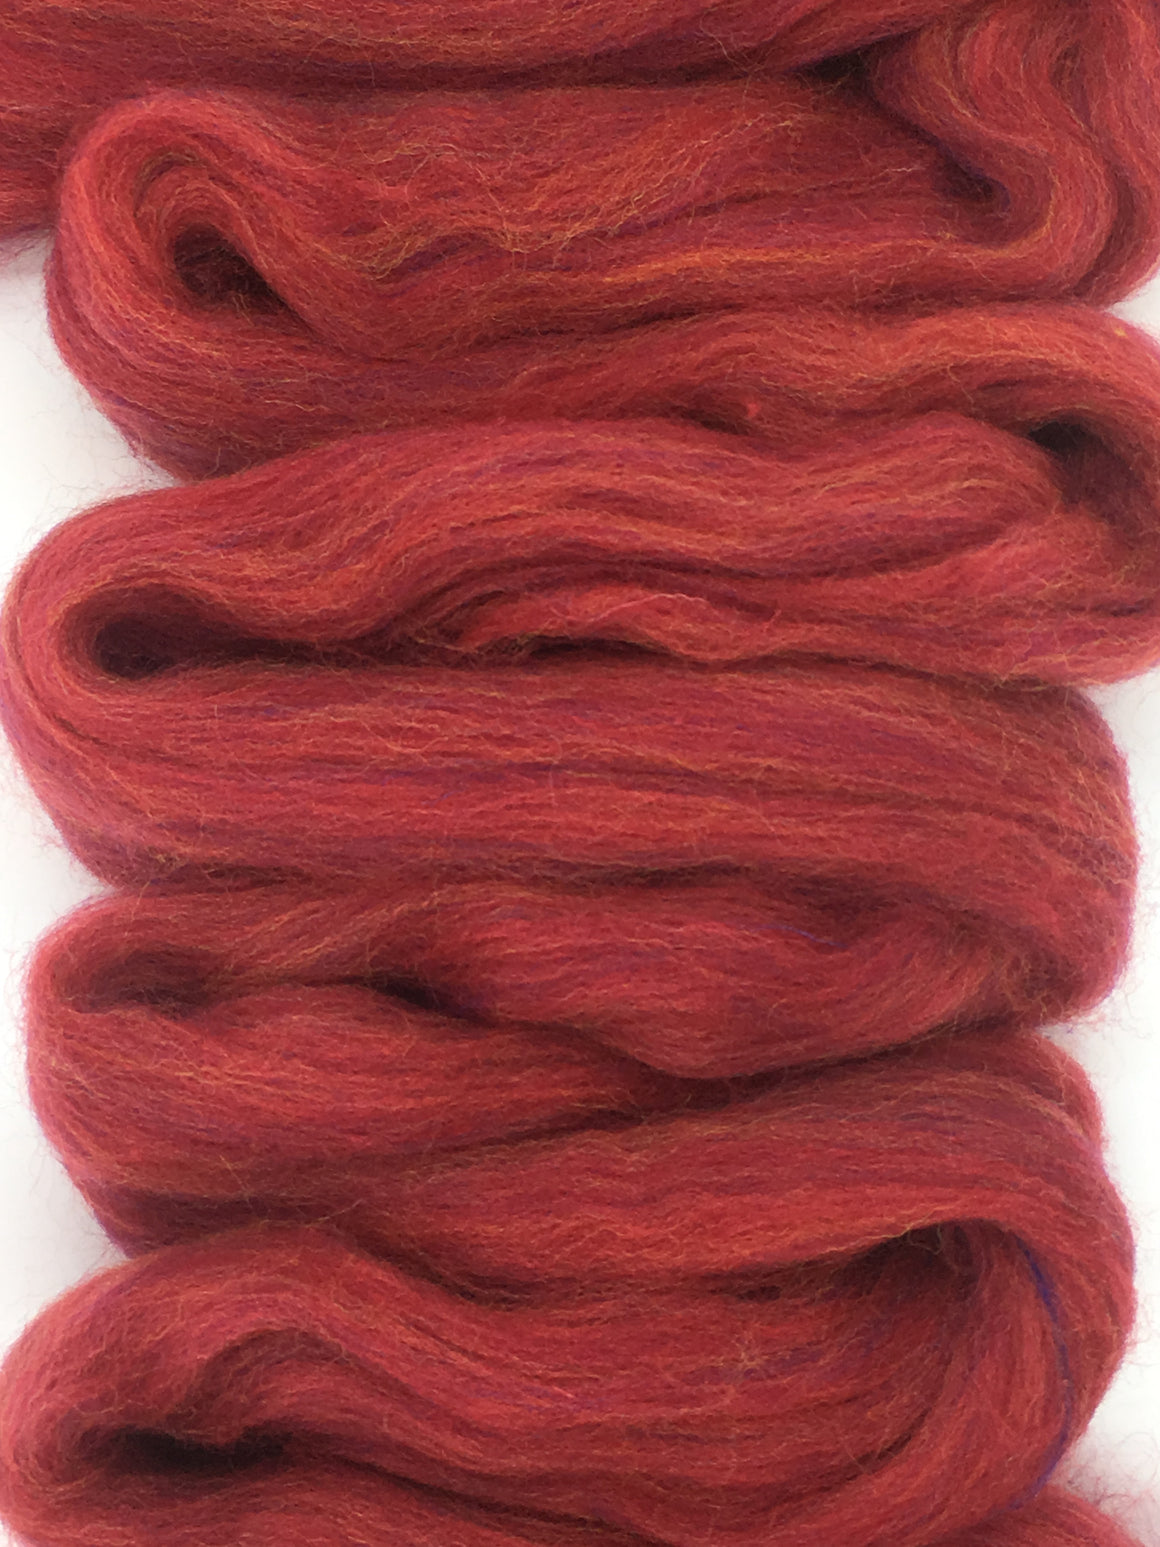 Persian Red Merino Wool Top Roving